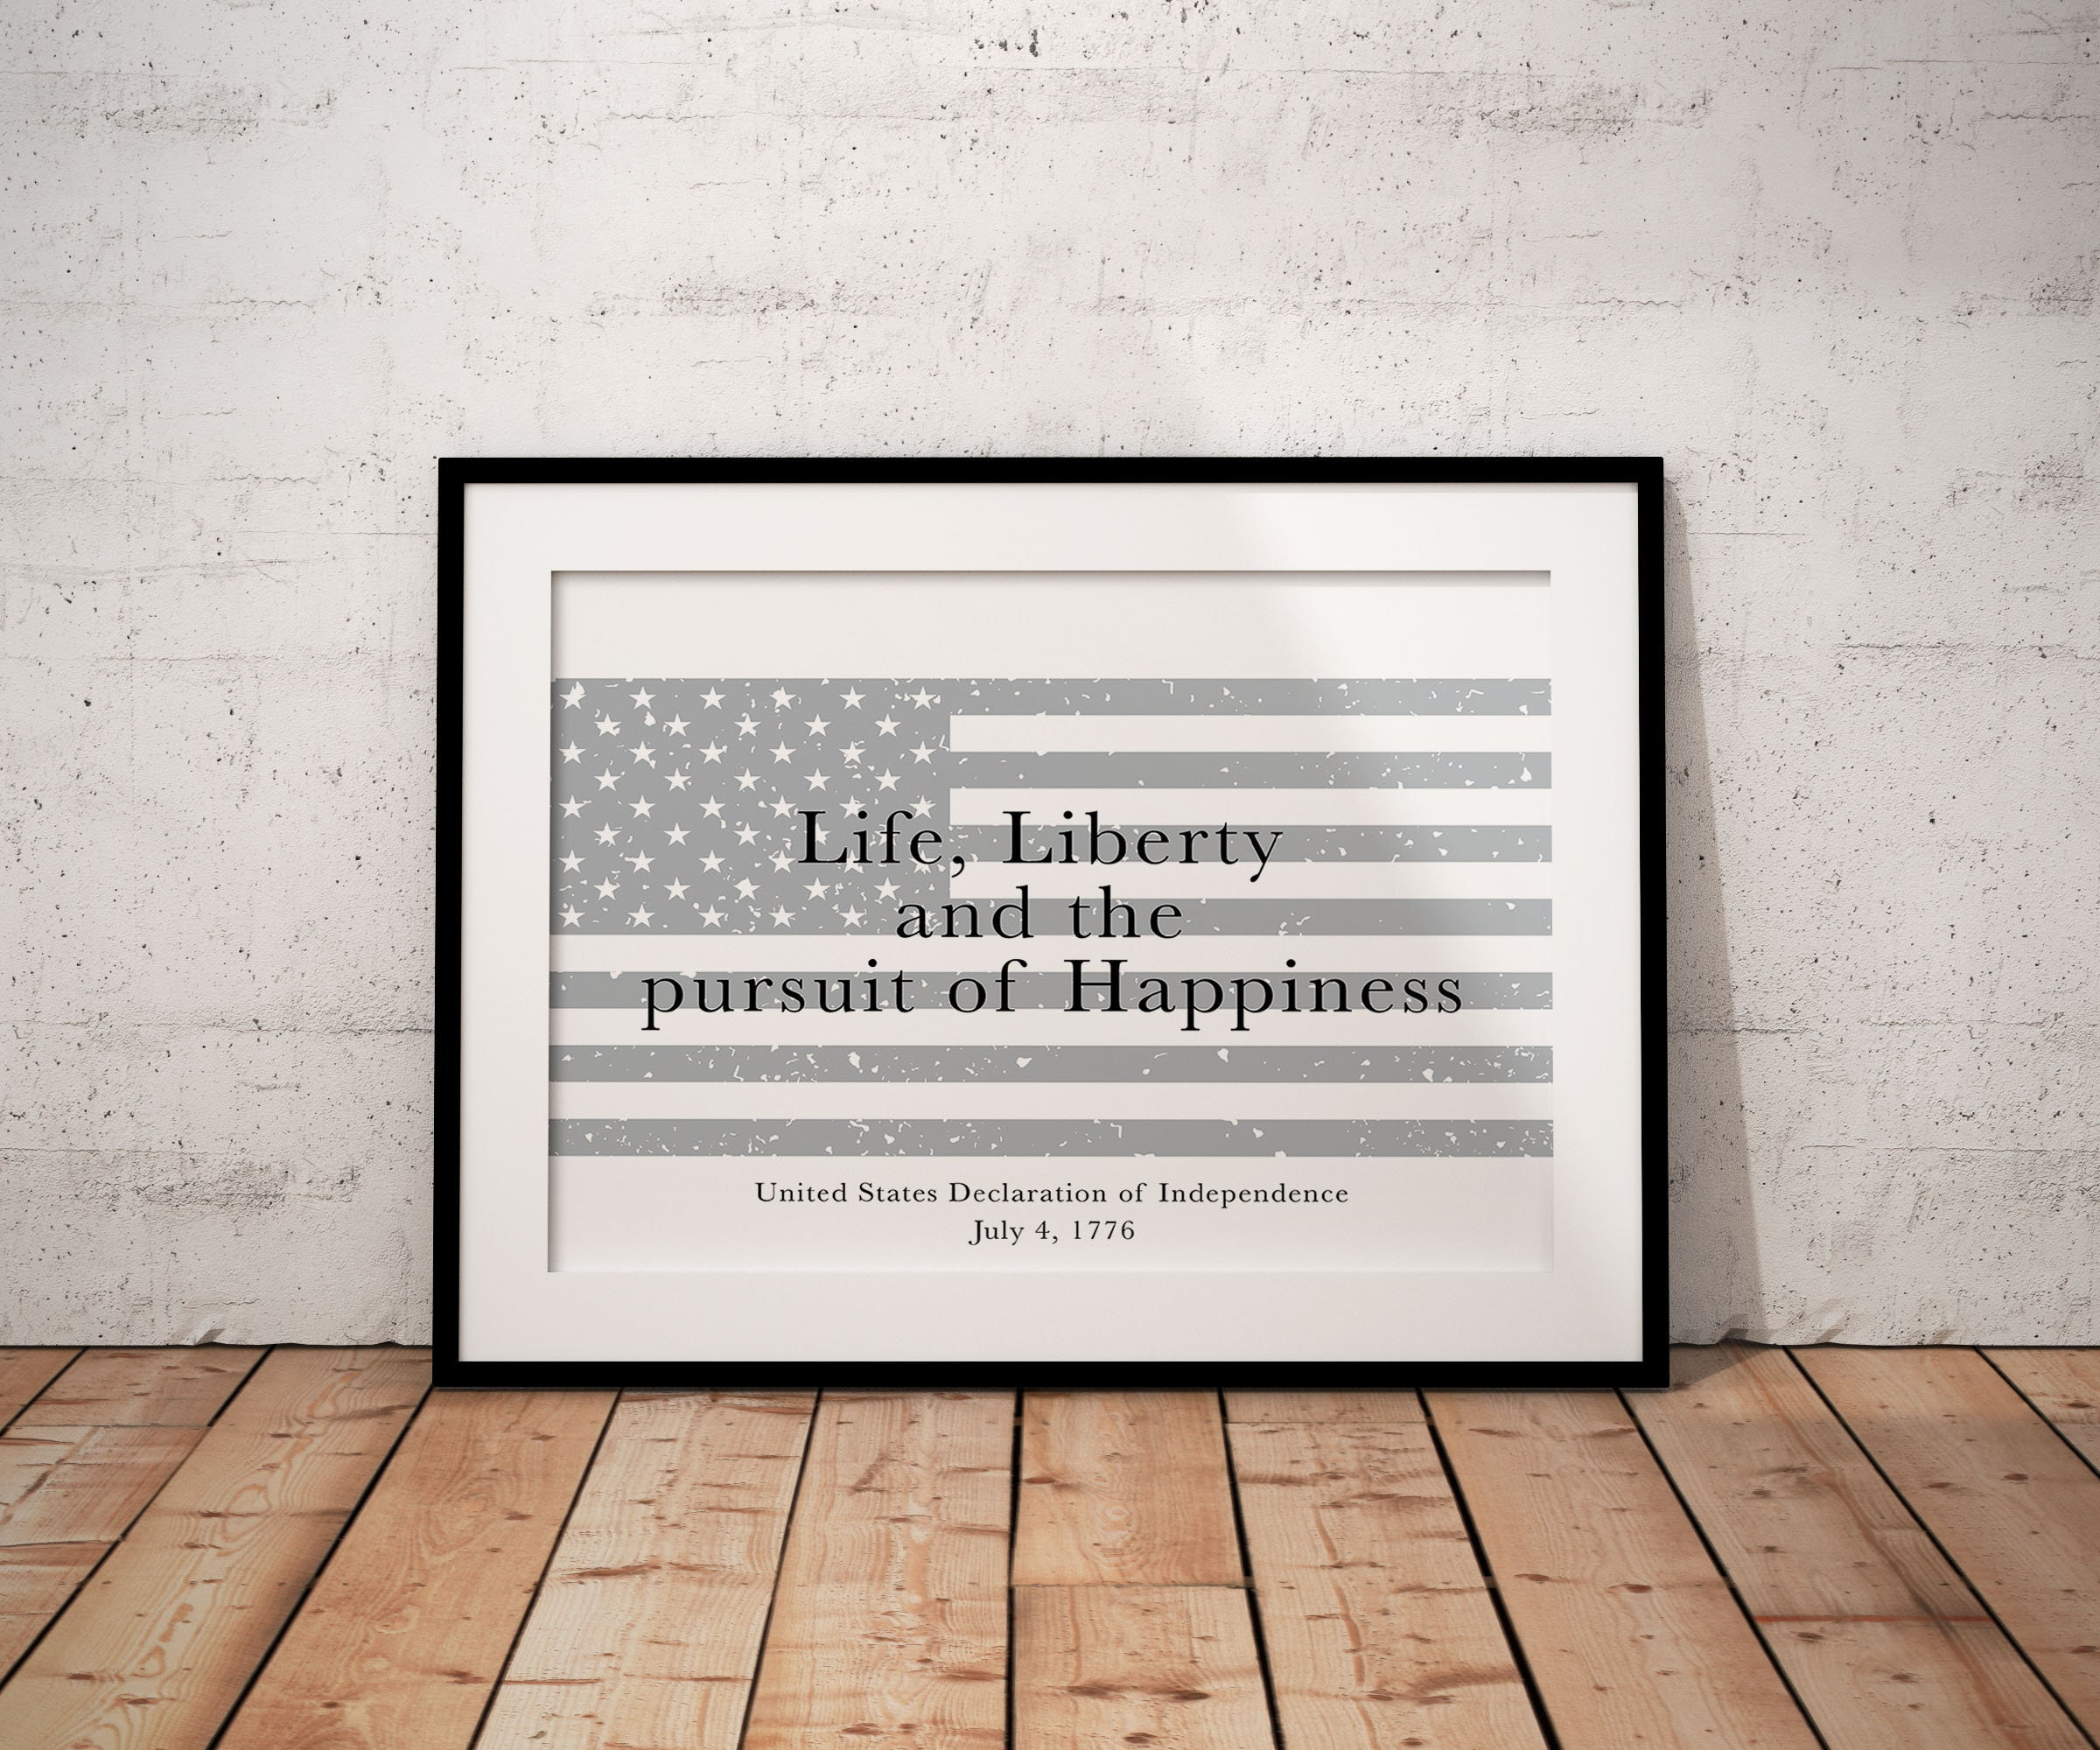 af11ca81c44a The Declaration of Independence Print, Life, Liberty and the Pursuit of  Happiness, in Black & White, Home Decor Wall Art